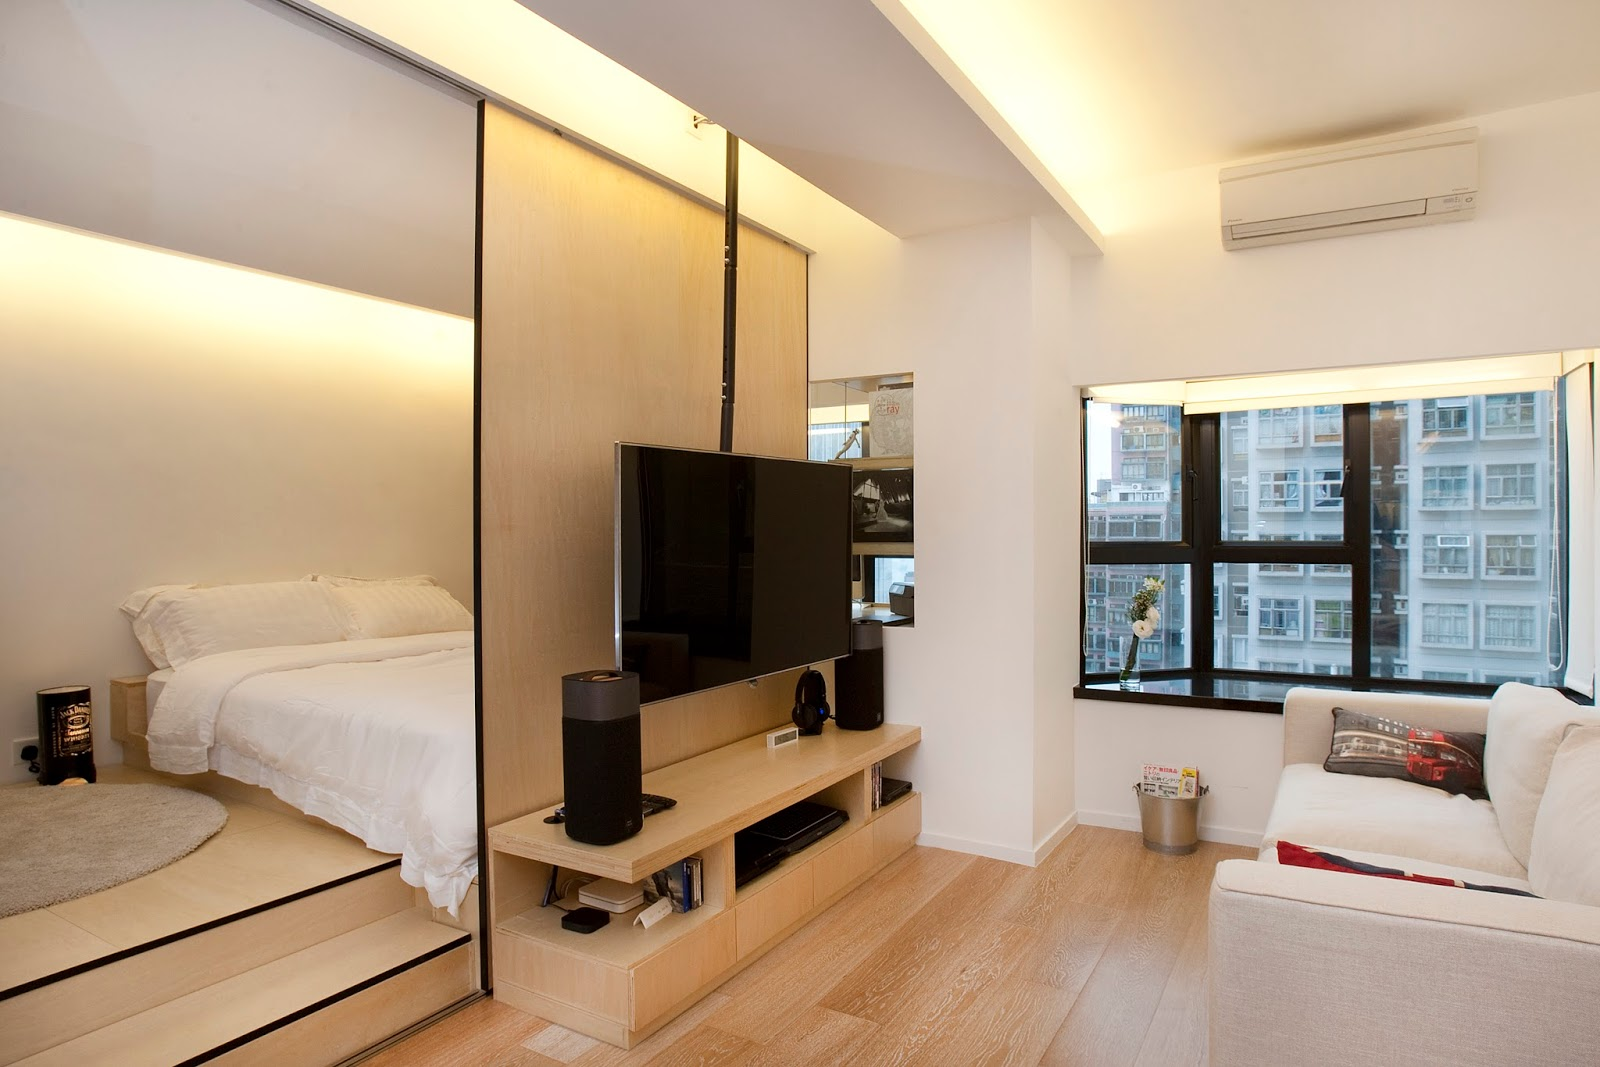 2/ Elevate Your Home! Wardrobes Are A Luxury For Most Hong Kong Homes And,  Even When They Do Exist, Are Usually Barely Adequate.